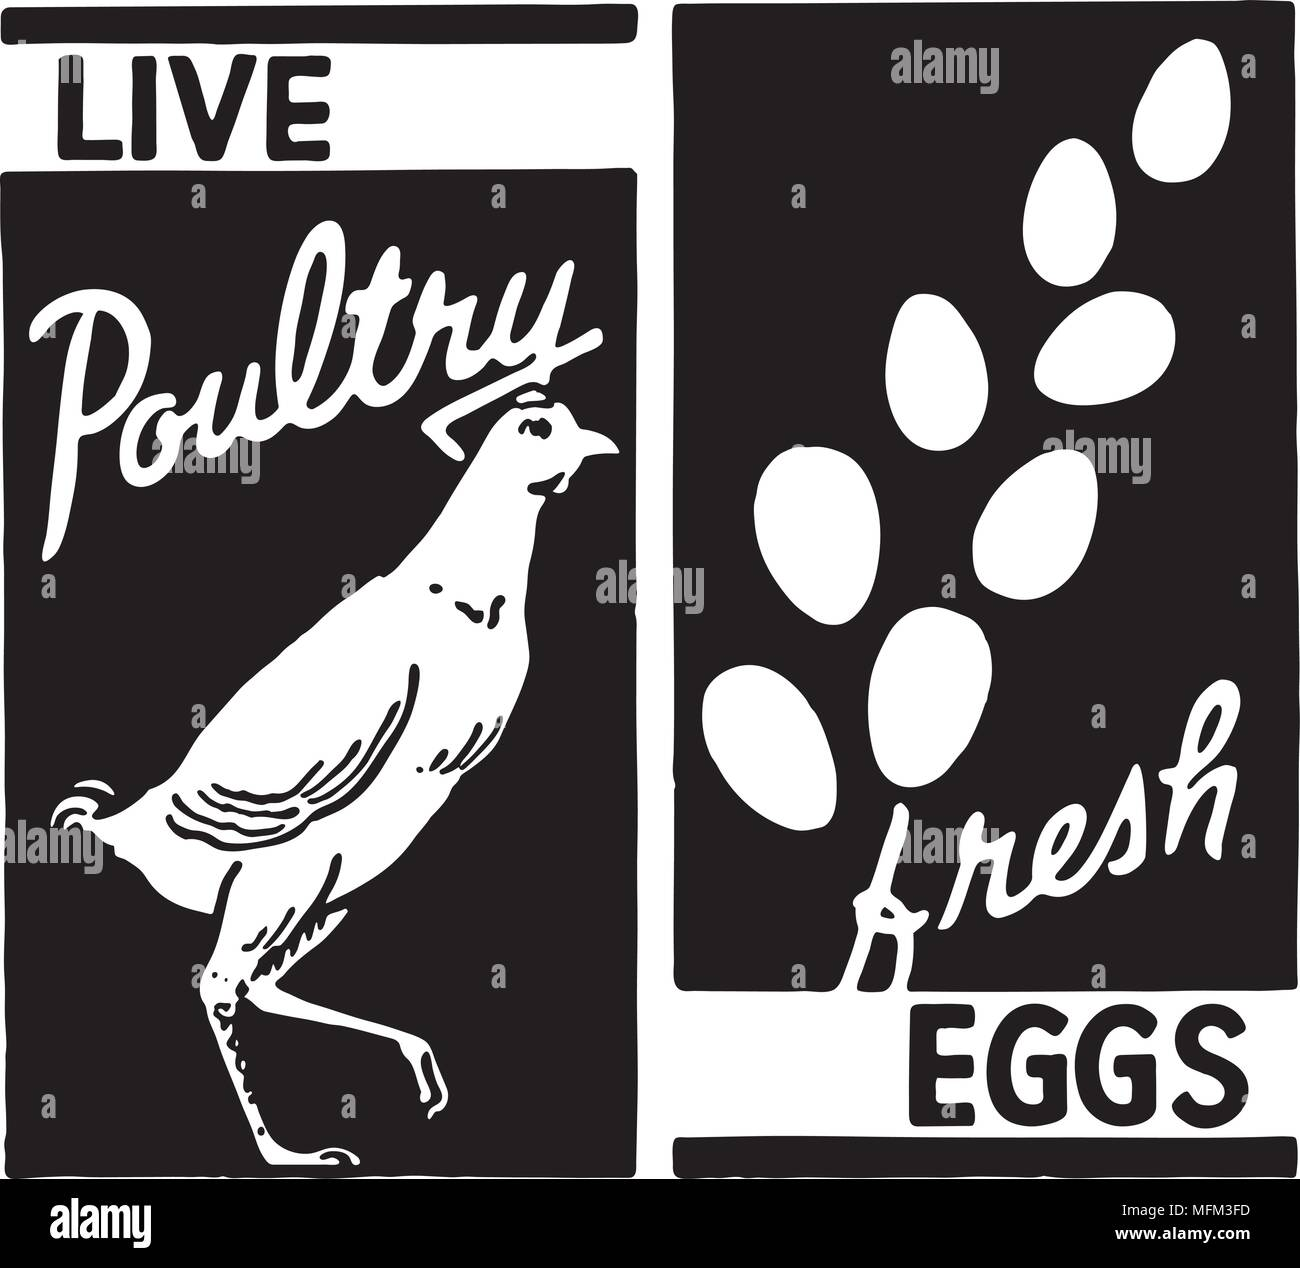 Live Poultry - Retro Ad Art Banner - Stock Vector